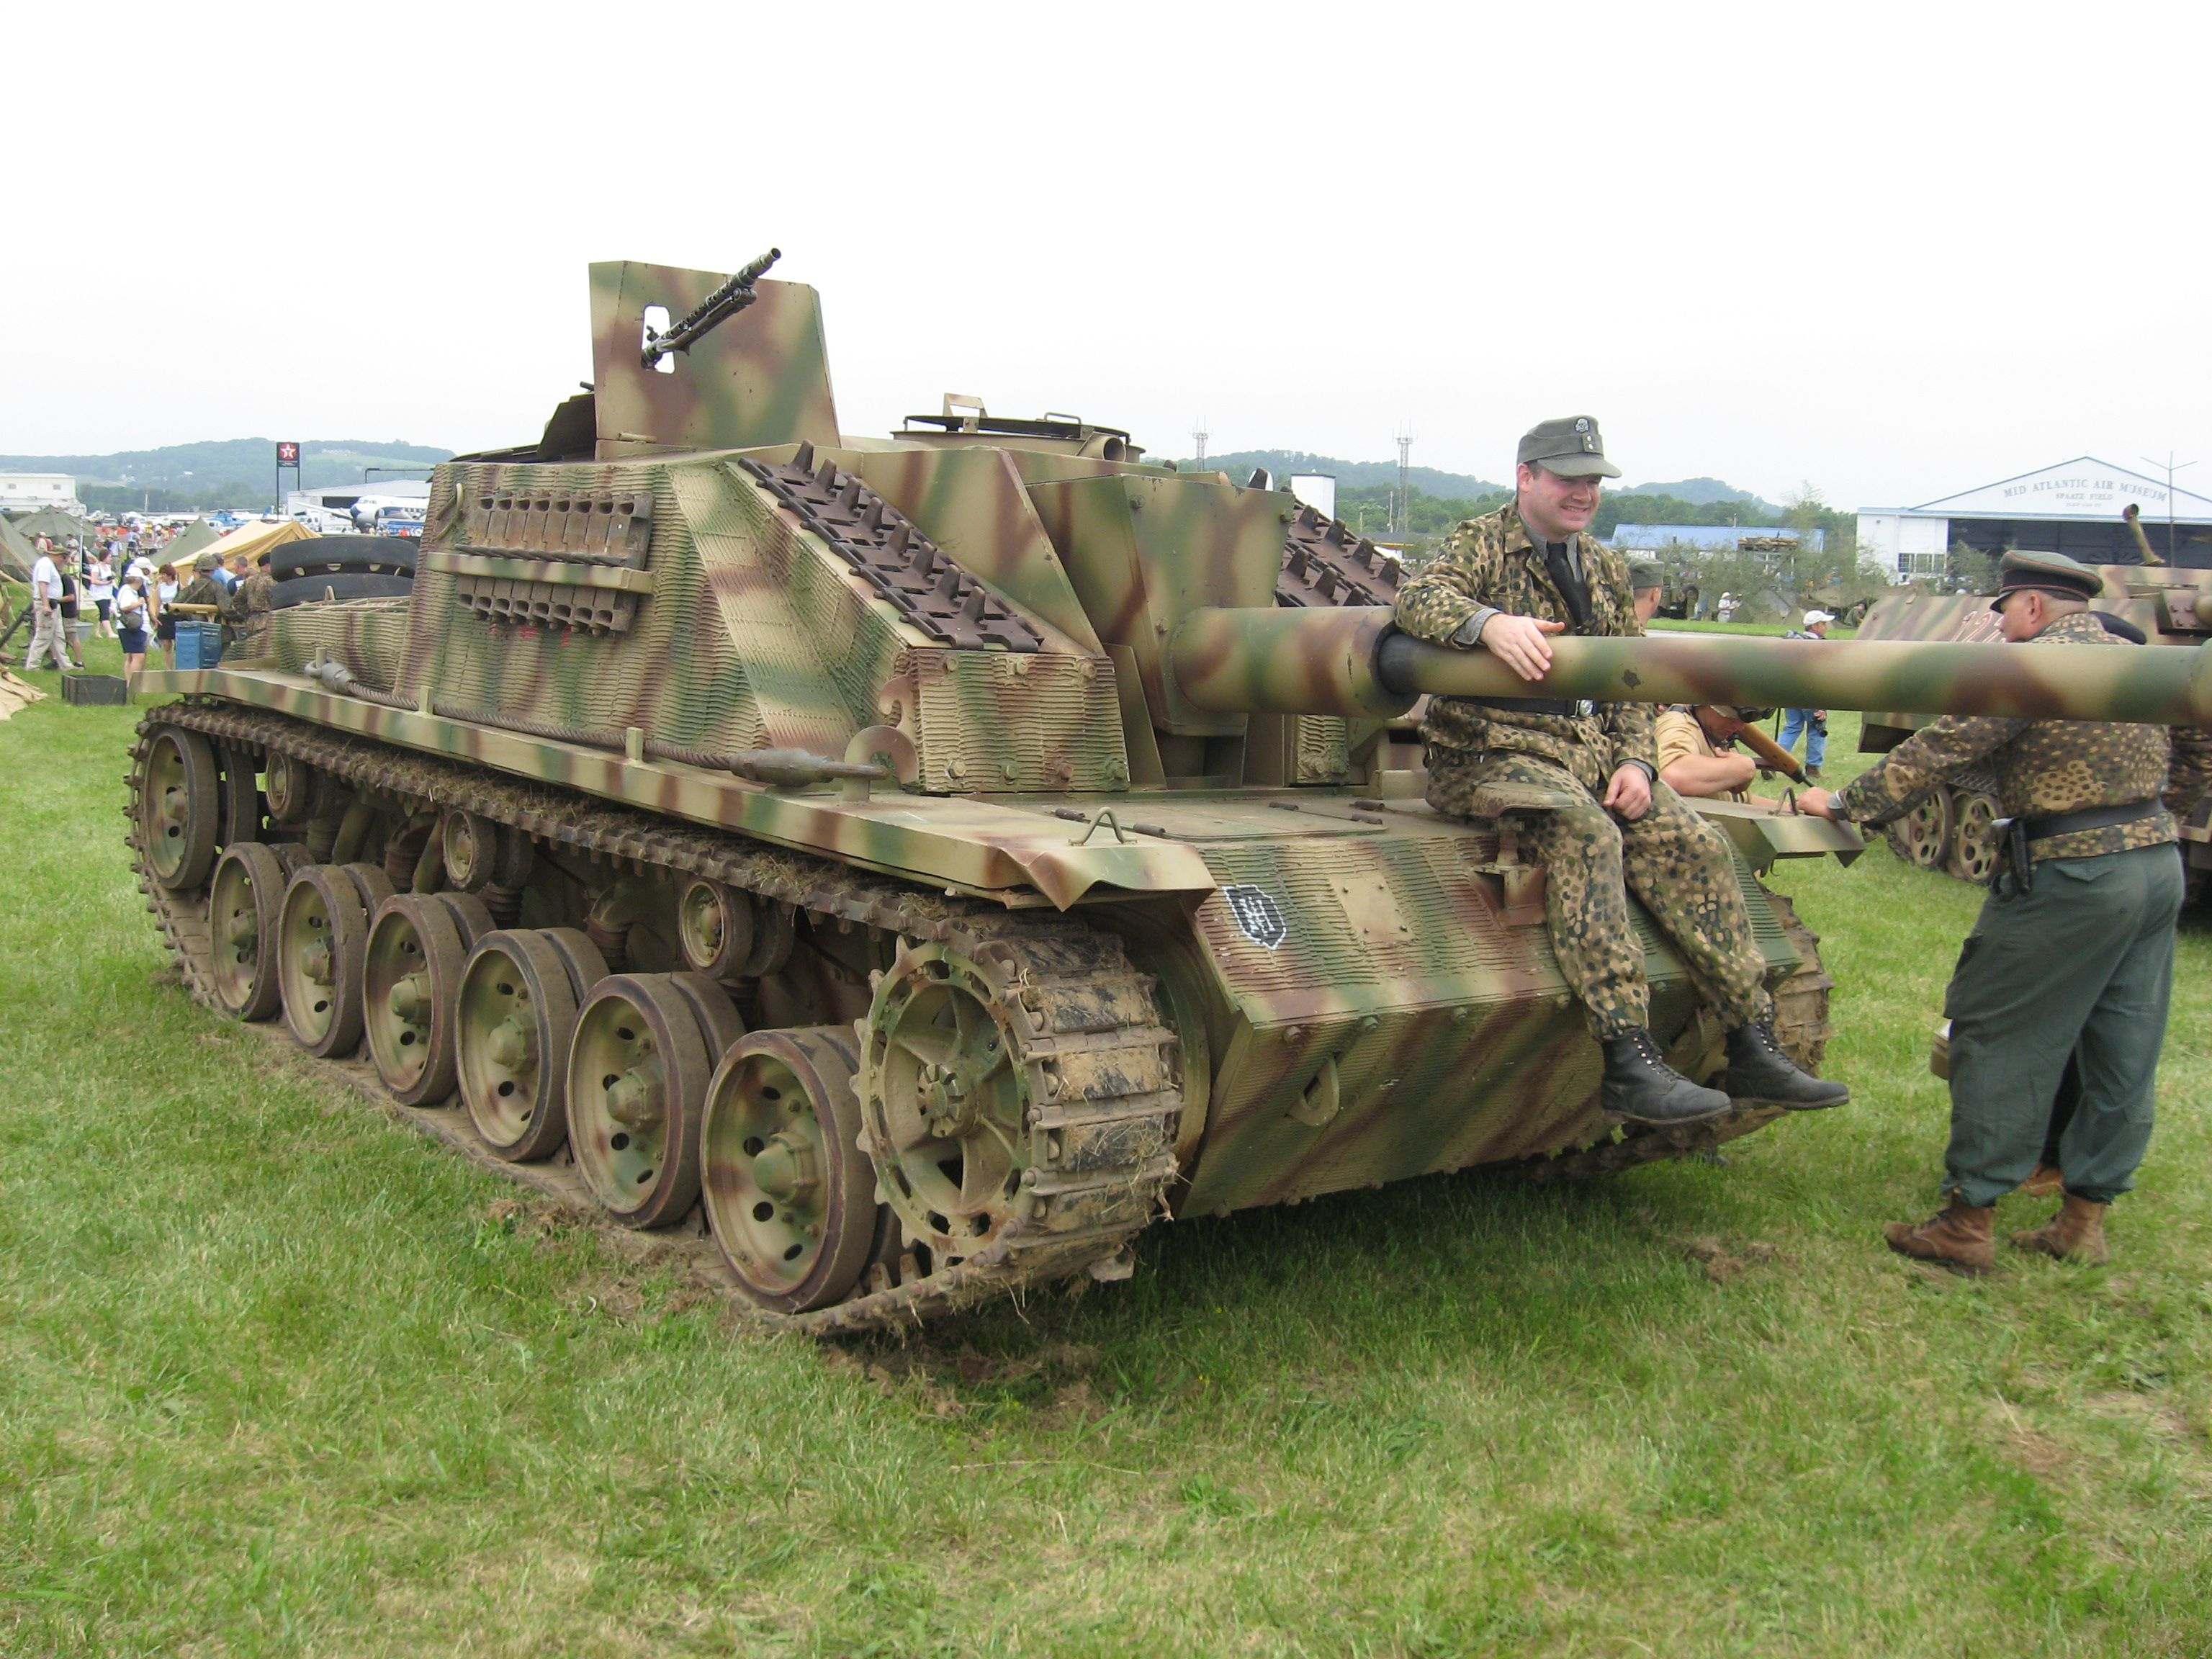 Day reenactment ww ii pictures pinterest - The Marder Iii Is The Name For A Series Of World War Ii German Tank Destroyers